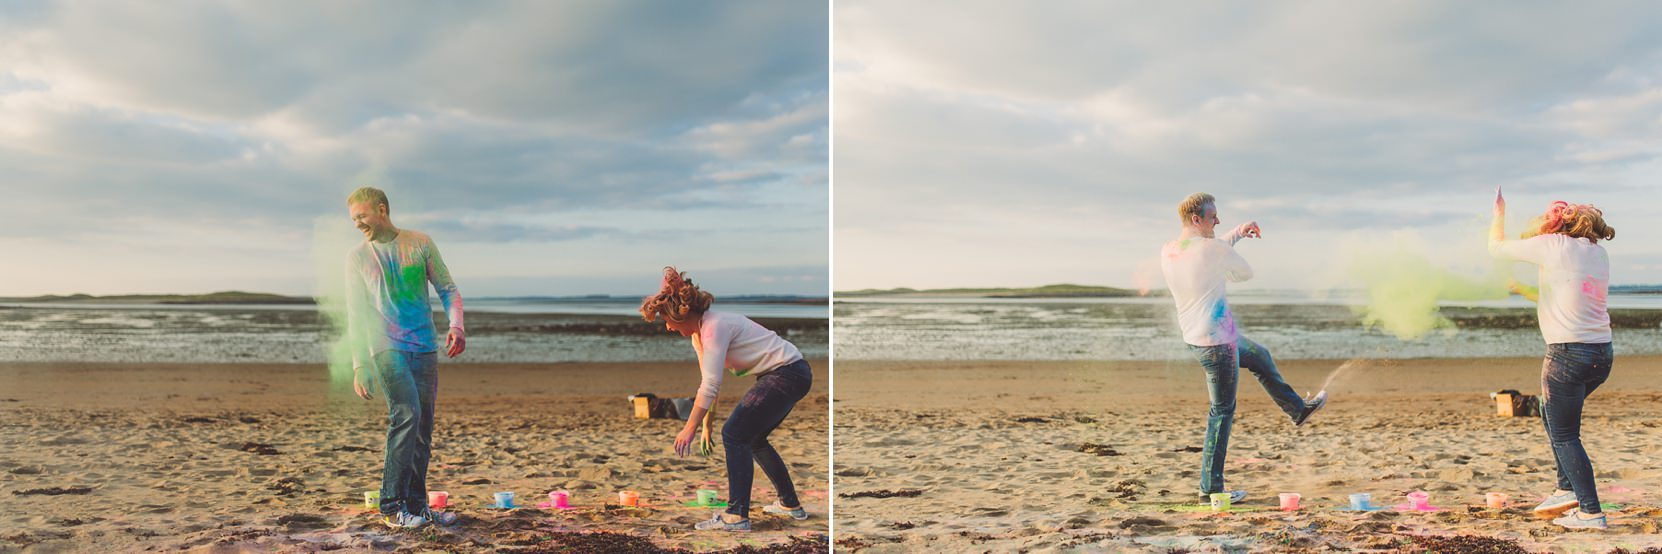 Engagement-Beach-Shoot_0030